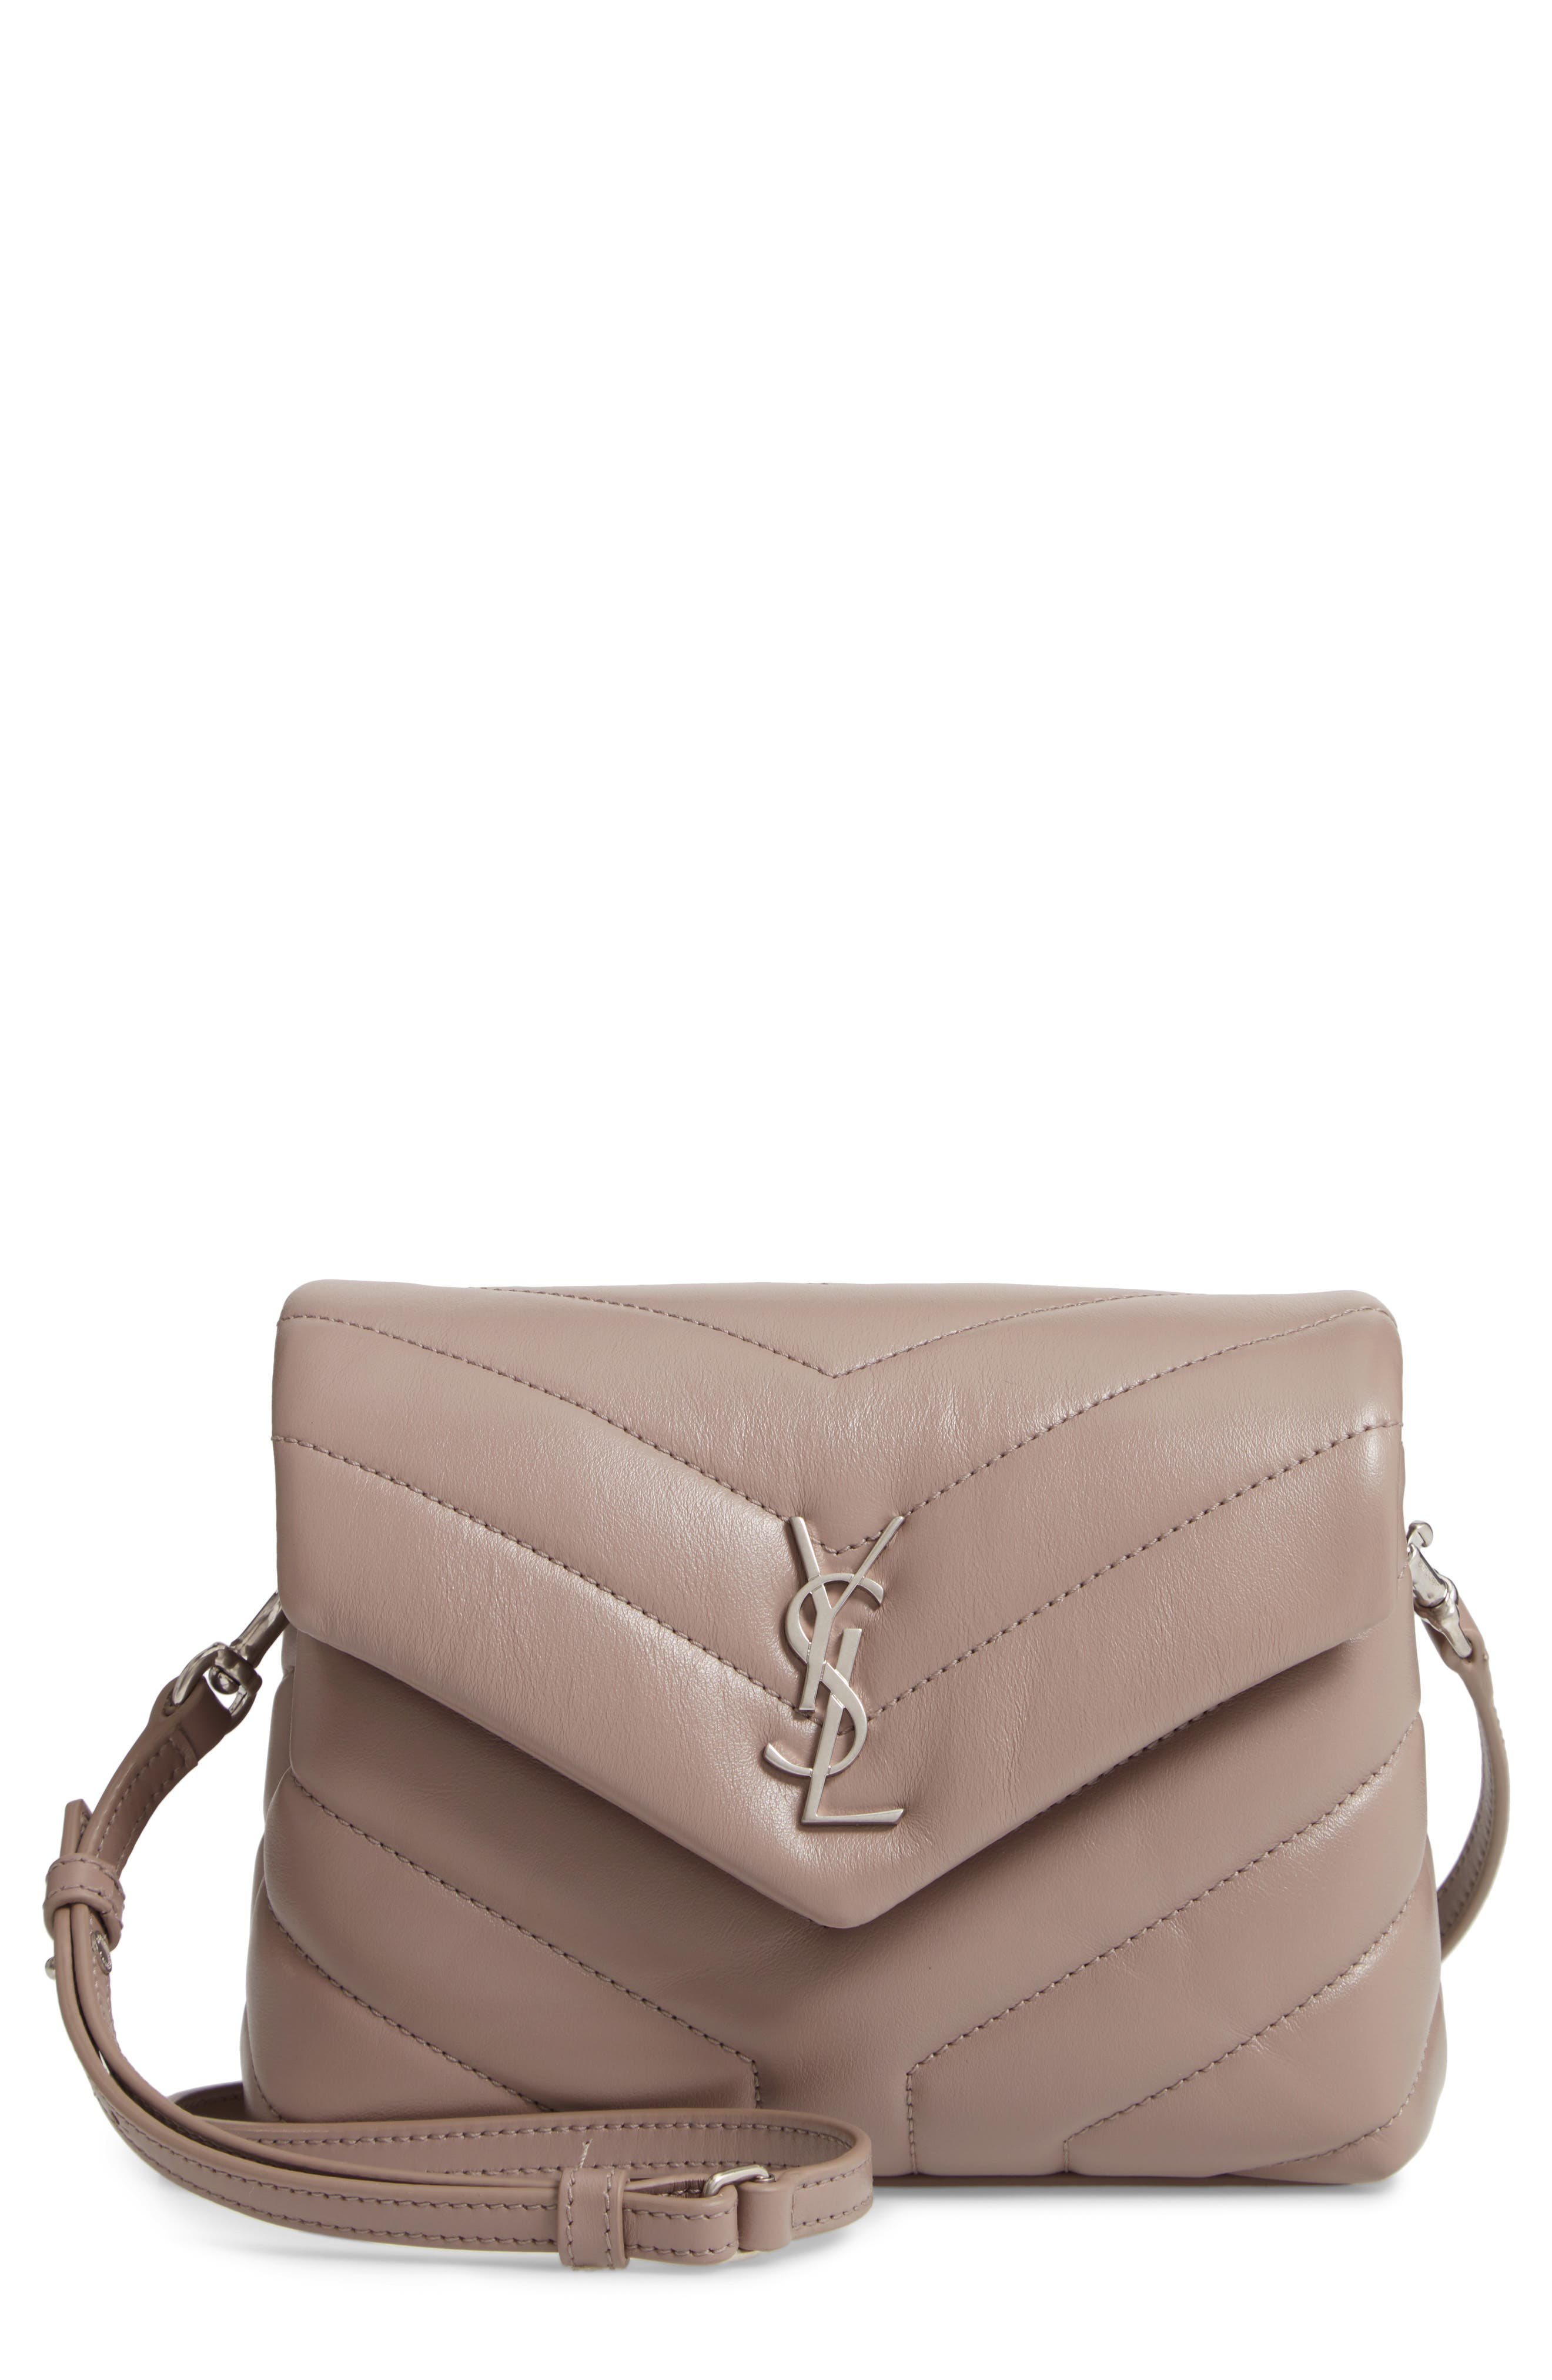 Toy Loulou Calfskin Leather Crossbody Bag,                         Main,                         color, MINK